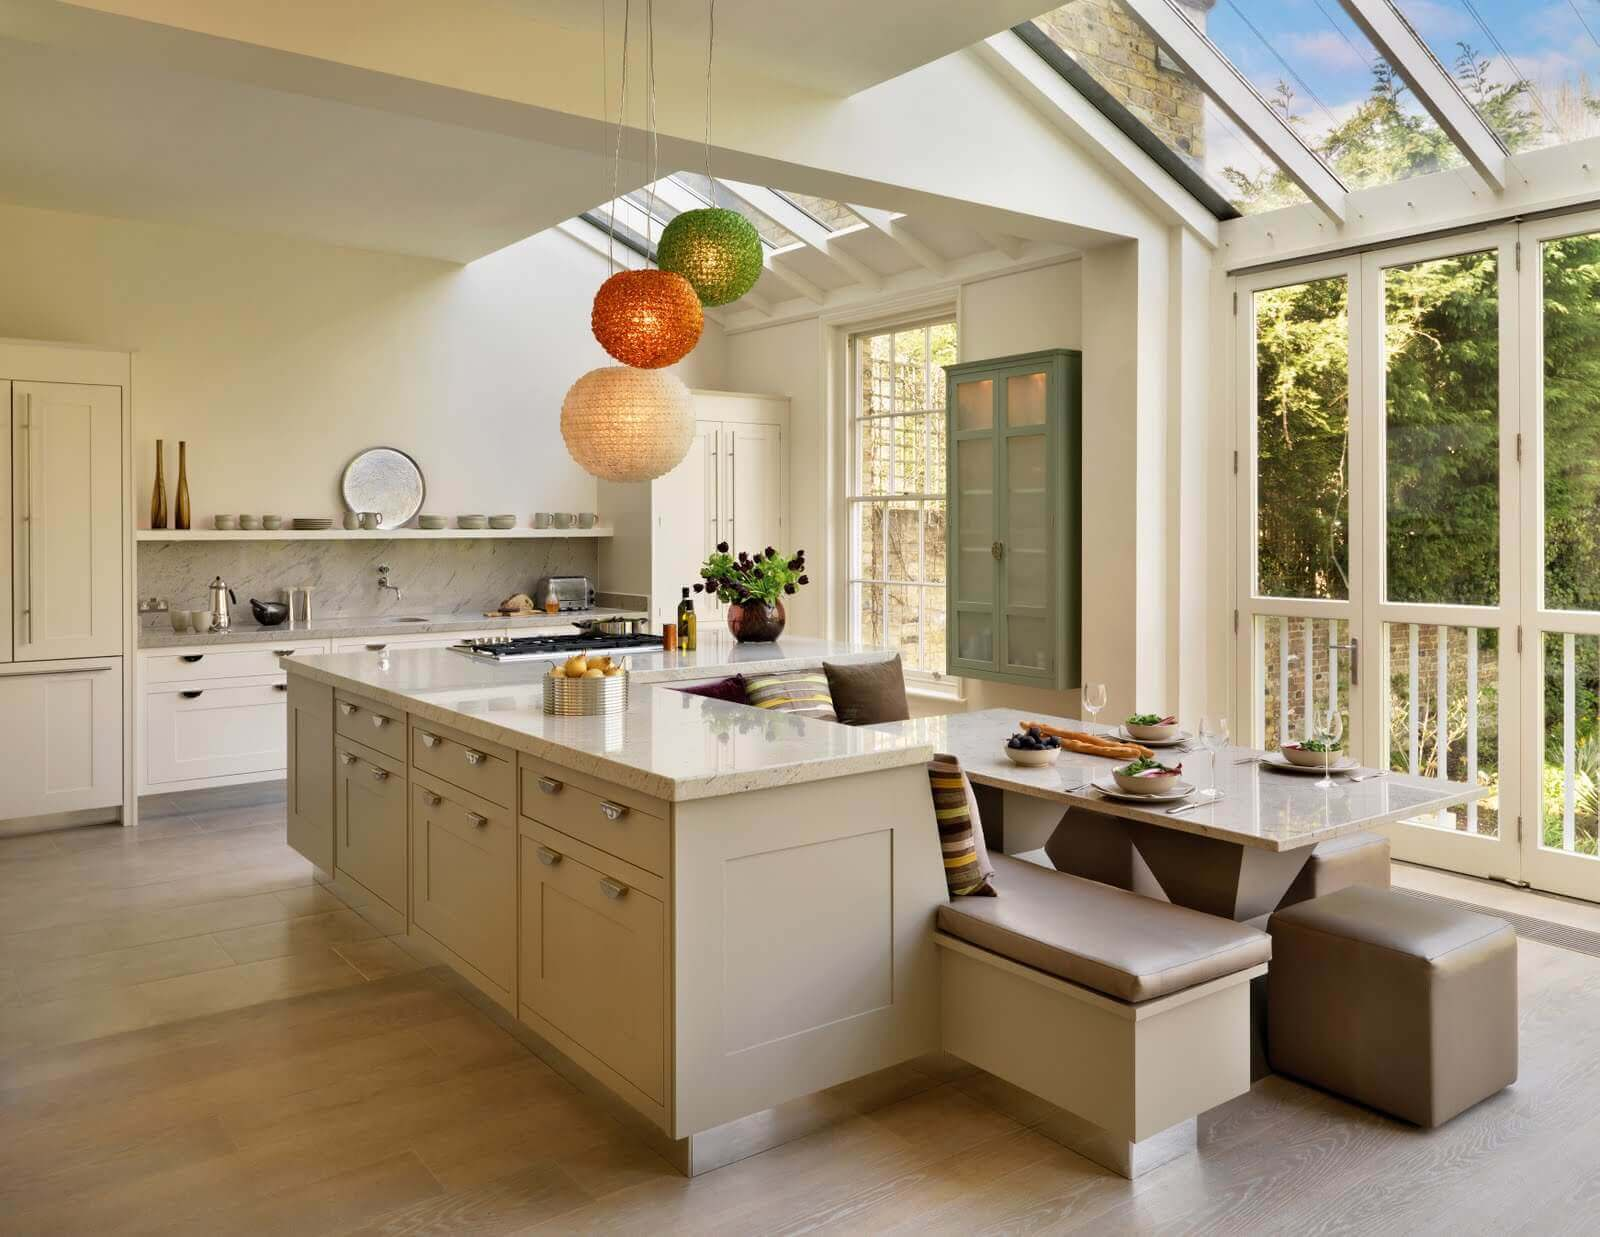 68 Deluxe Custom Kitchen Island Ideas Jaw Dropping Designs Home